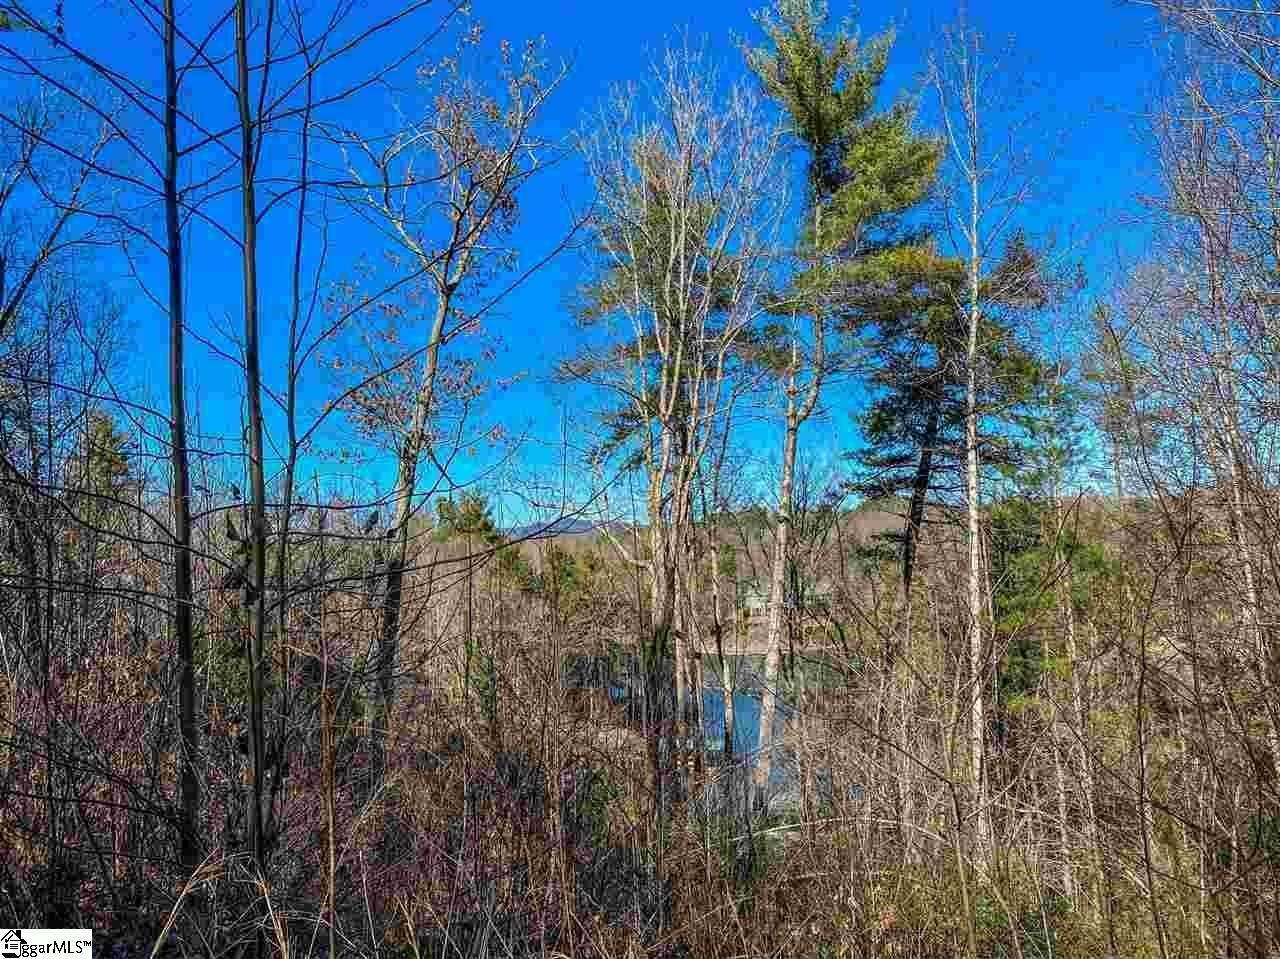 10. Residential Lot for Sale at The Cliffs At Keowee Falls North, Salem, SC 29676